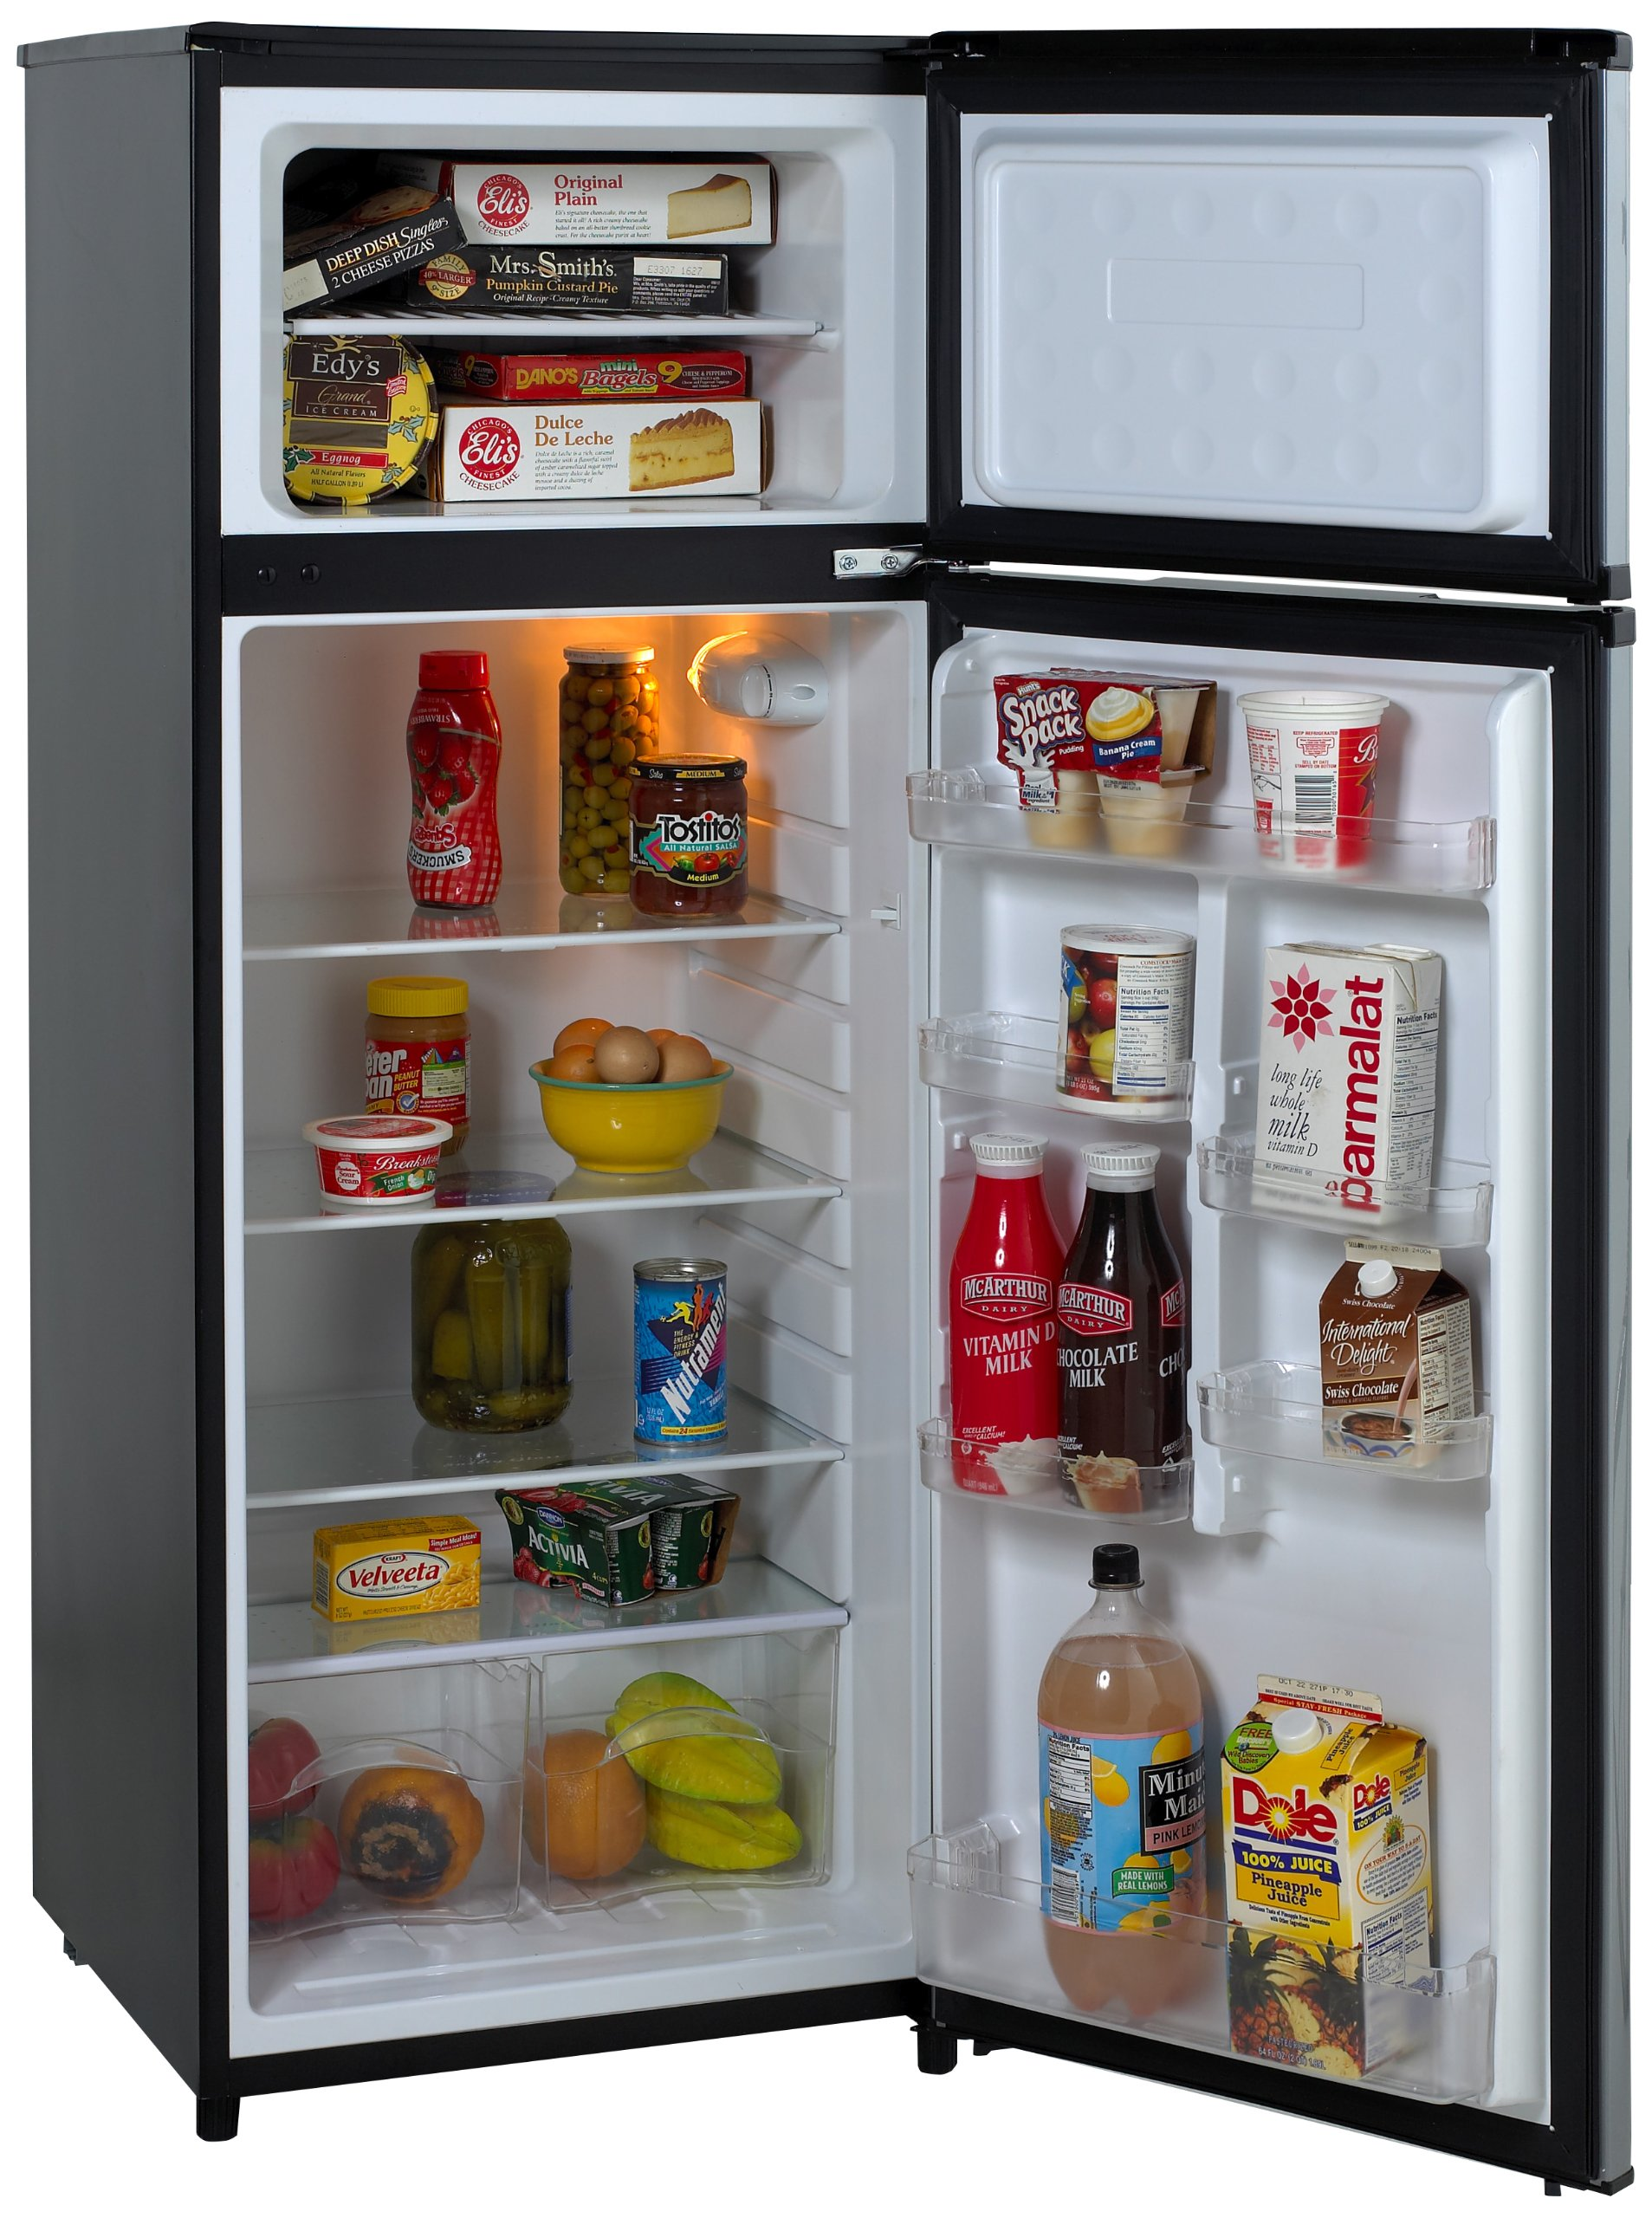 Cheap Apartment Size Refrigerator Dimensions Find Apartment Size